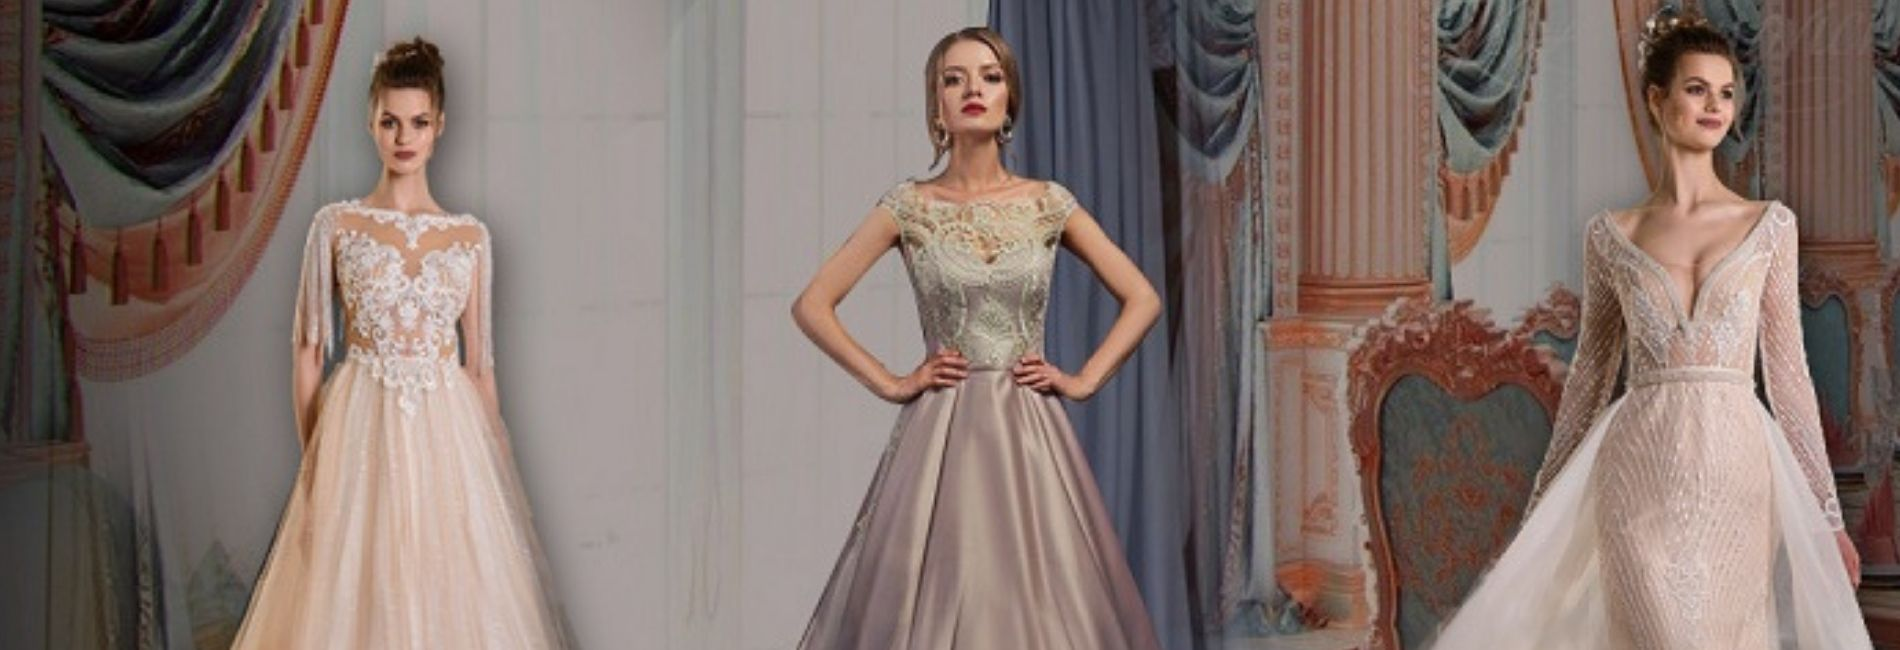 BRIDAL WEDDING GOWNS AND THEIR NEVER-ENDING DESIGNING INNOVATIONS